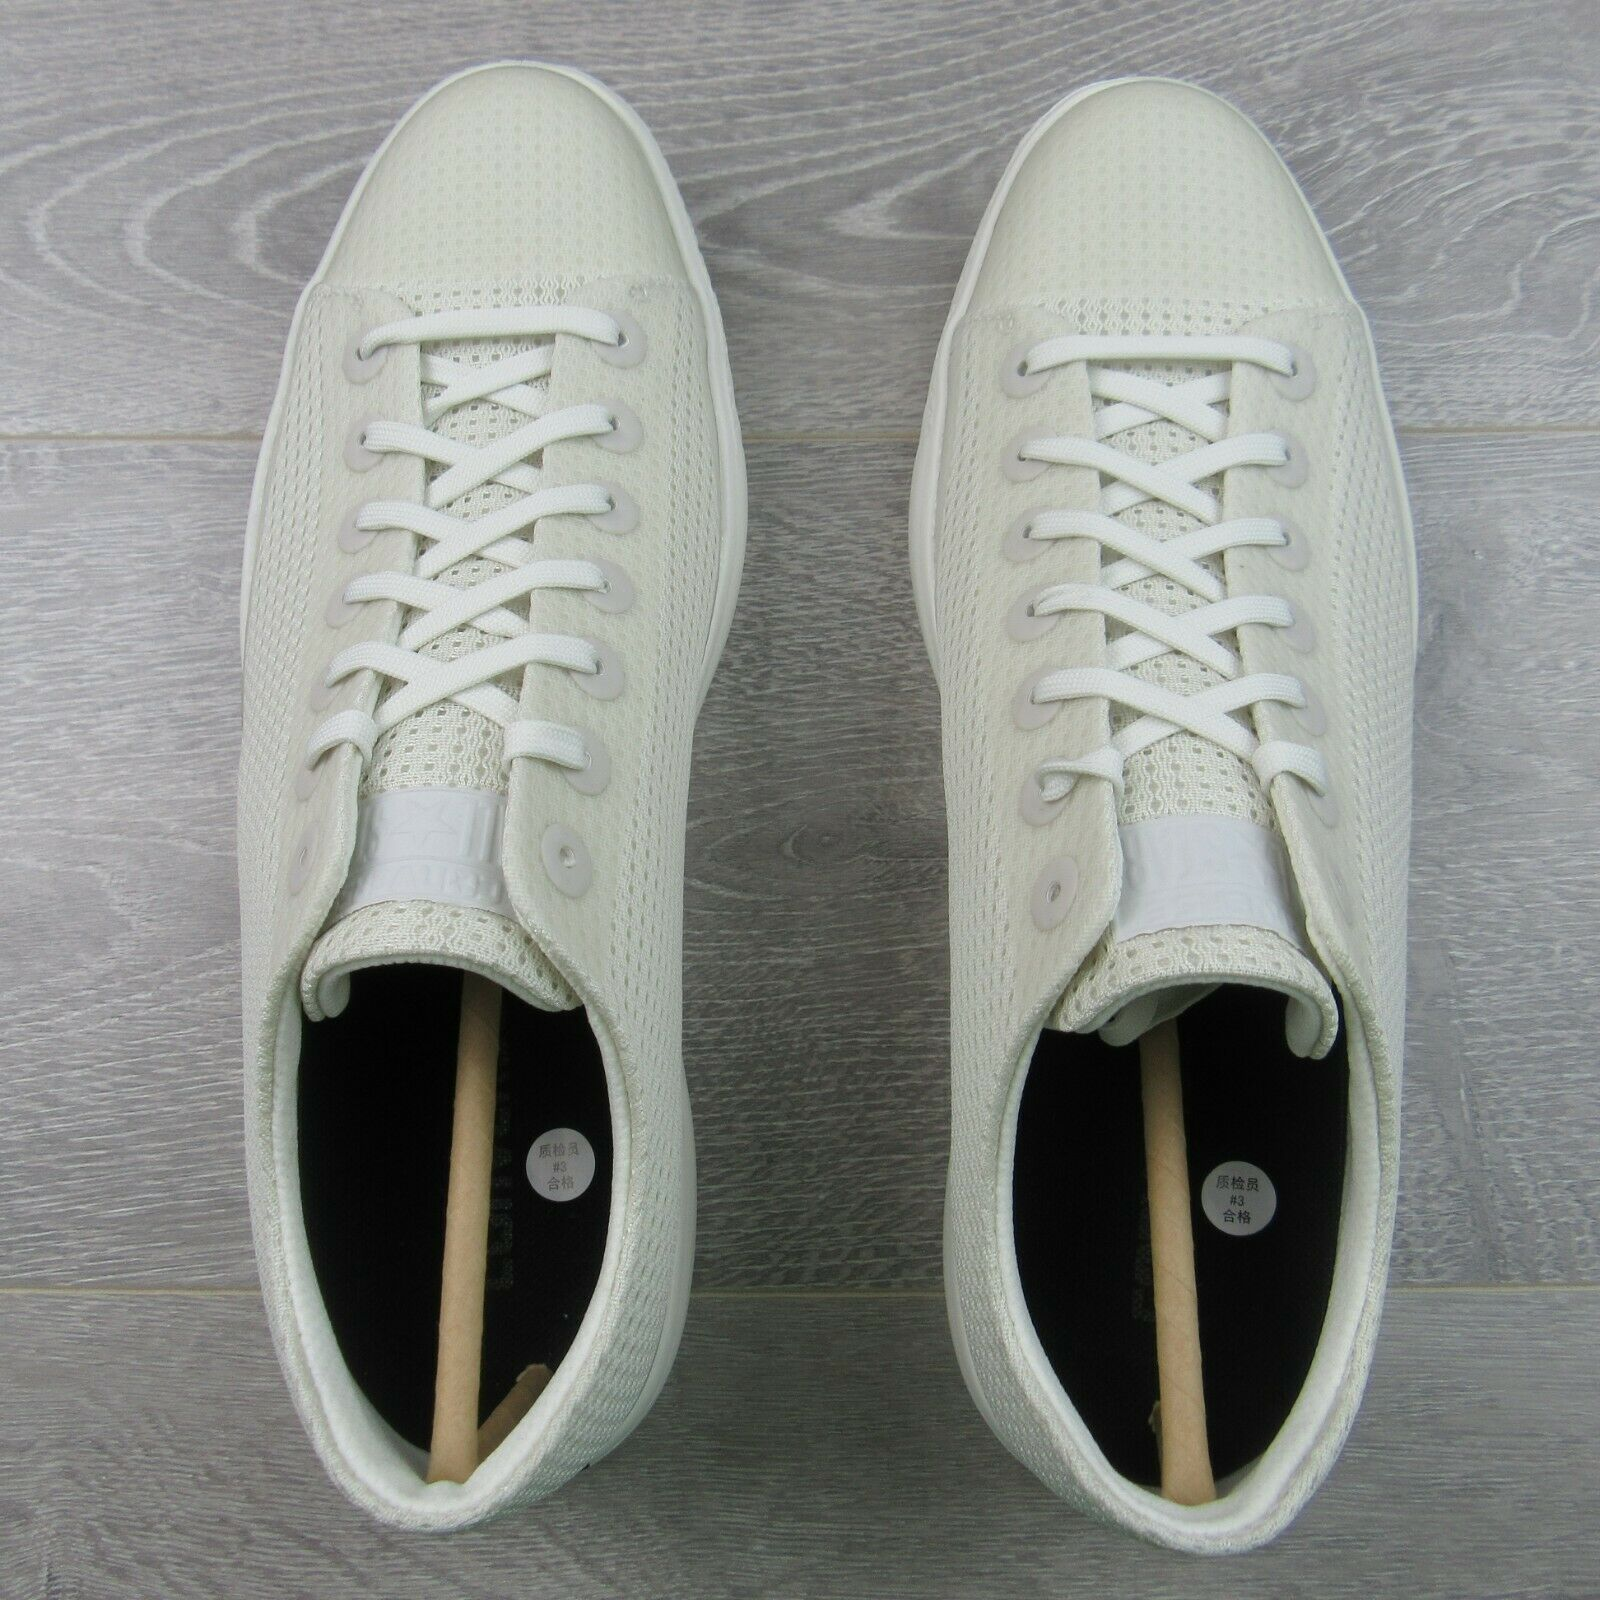 Converse CTAS Modern OX Buff White Shoes Size 9.5 Mens NEW 156652C image 8